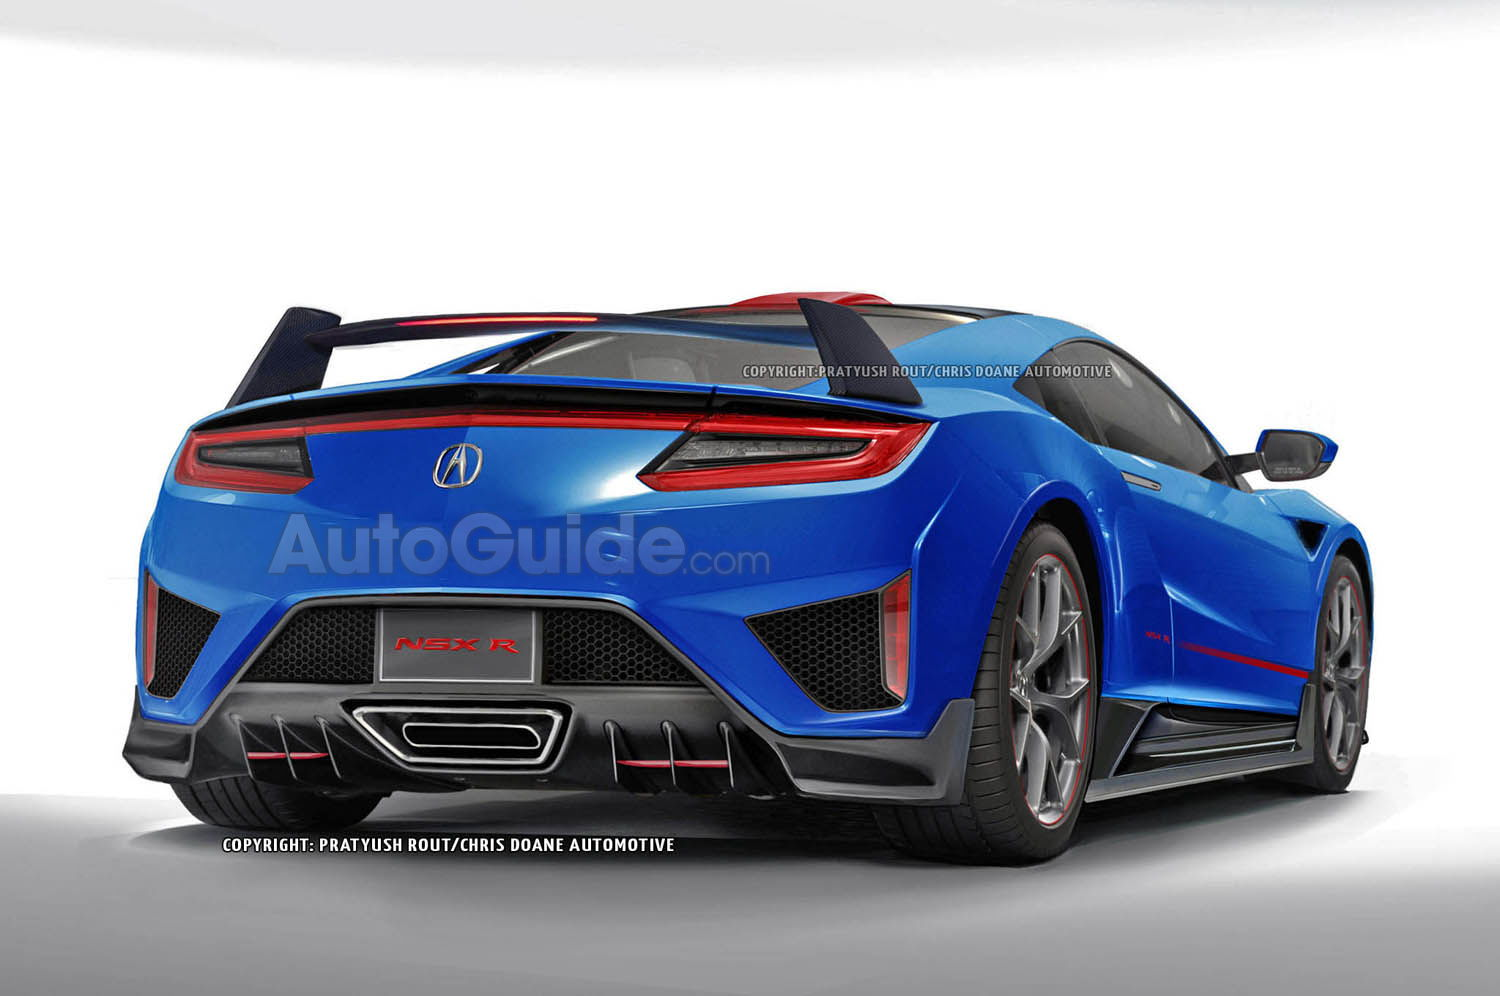 more extreme acura nsx coming in 2018 acurazine acura enthusiast community. Black Bedroom Furniture Sets. Home Design Ideas